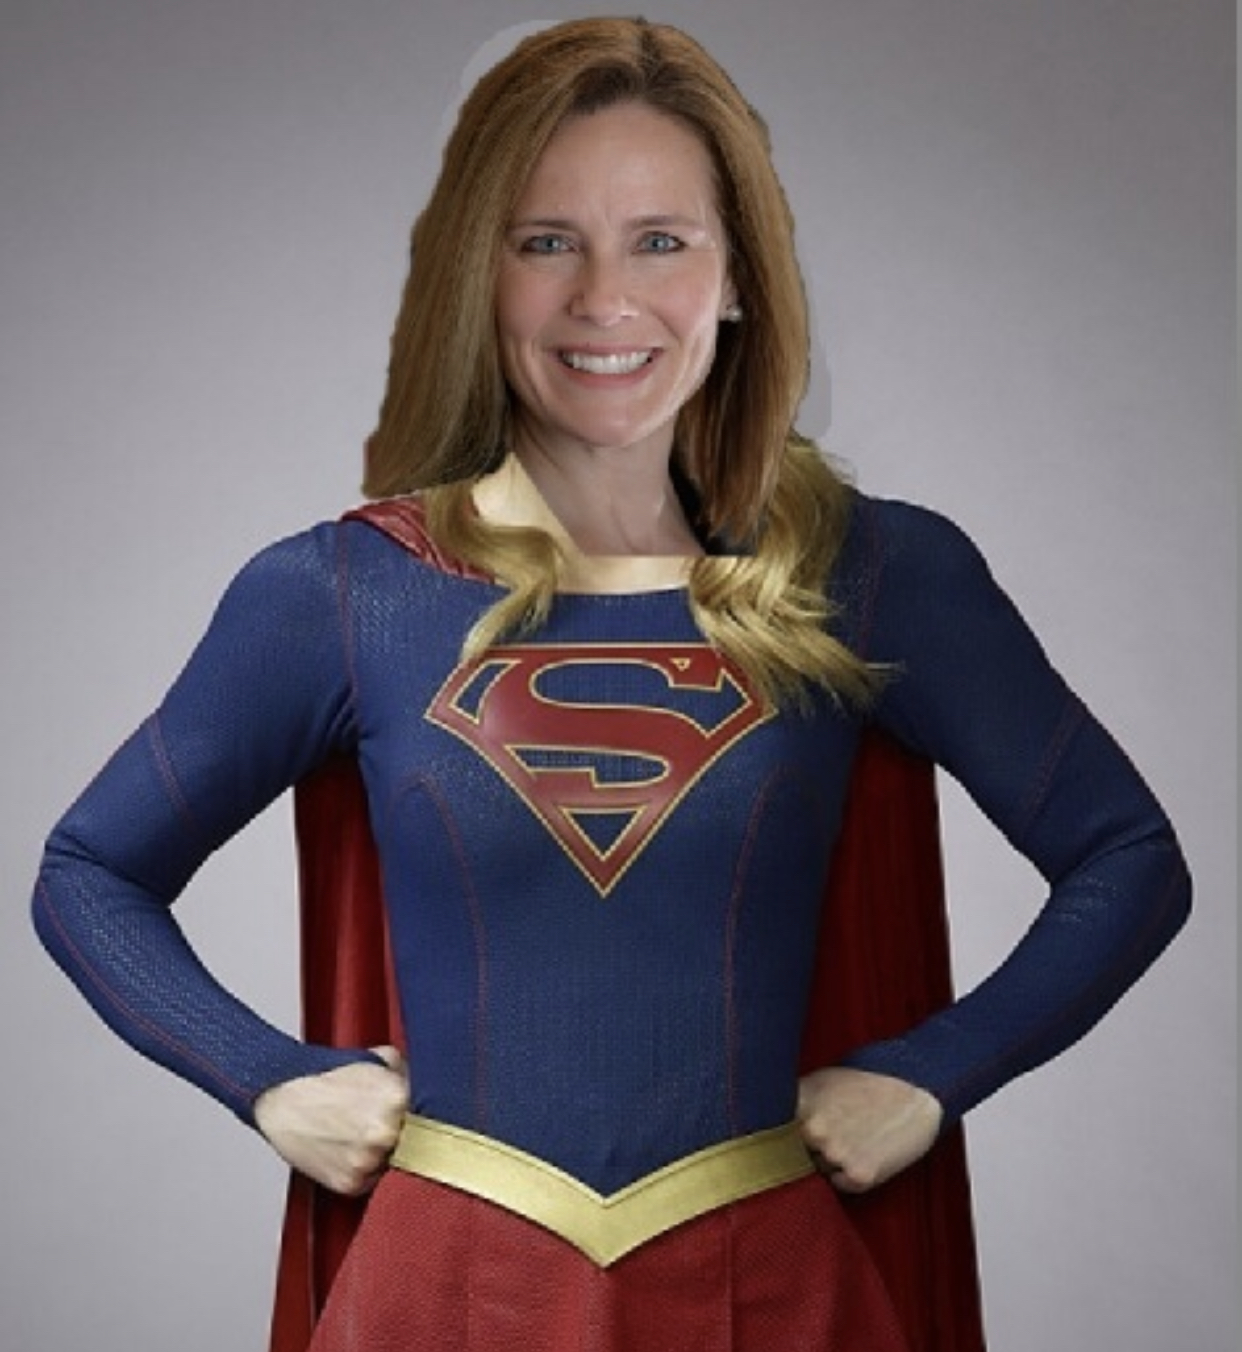 Coney-Barrett-Superwoman.jpg?fit=1242,13